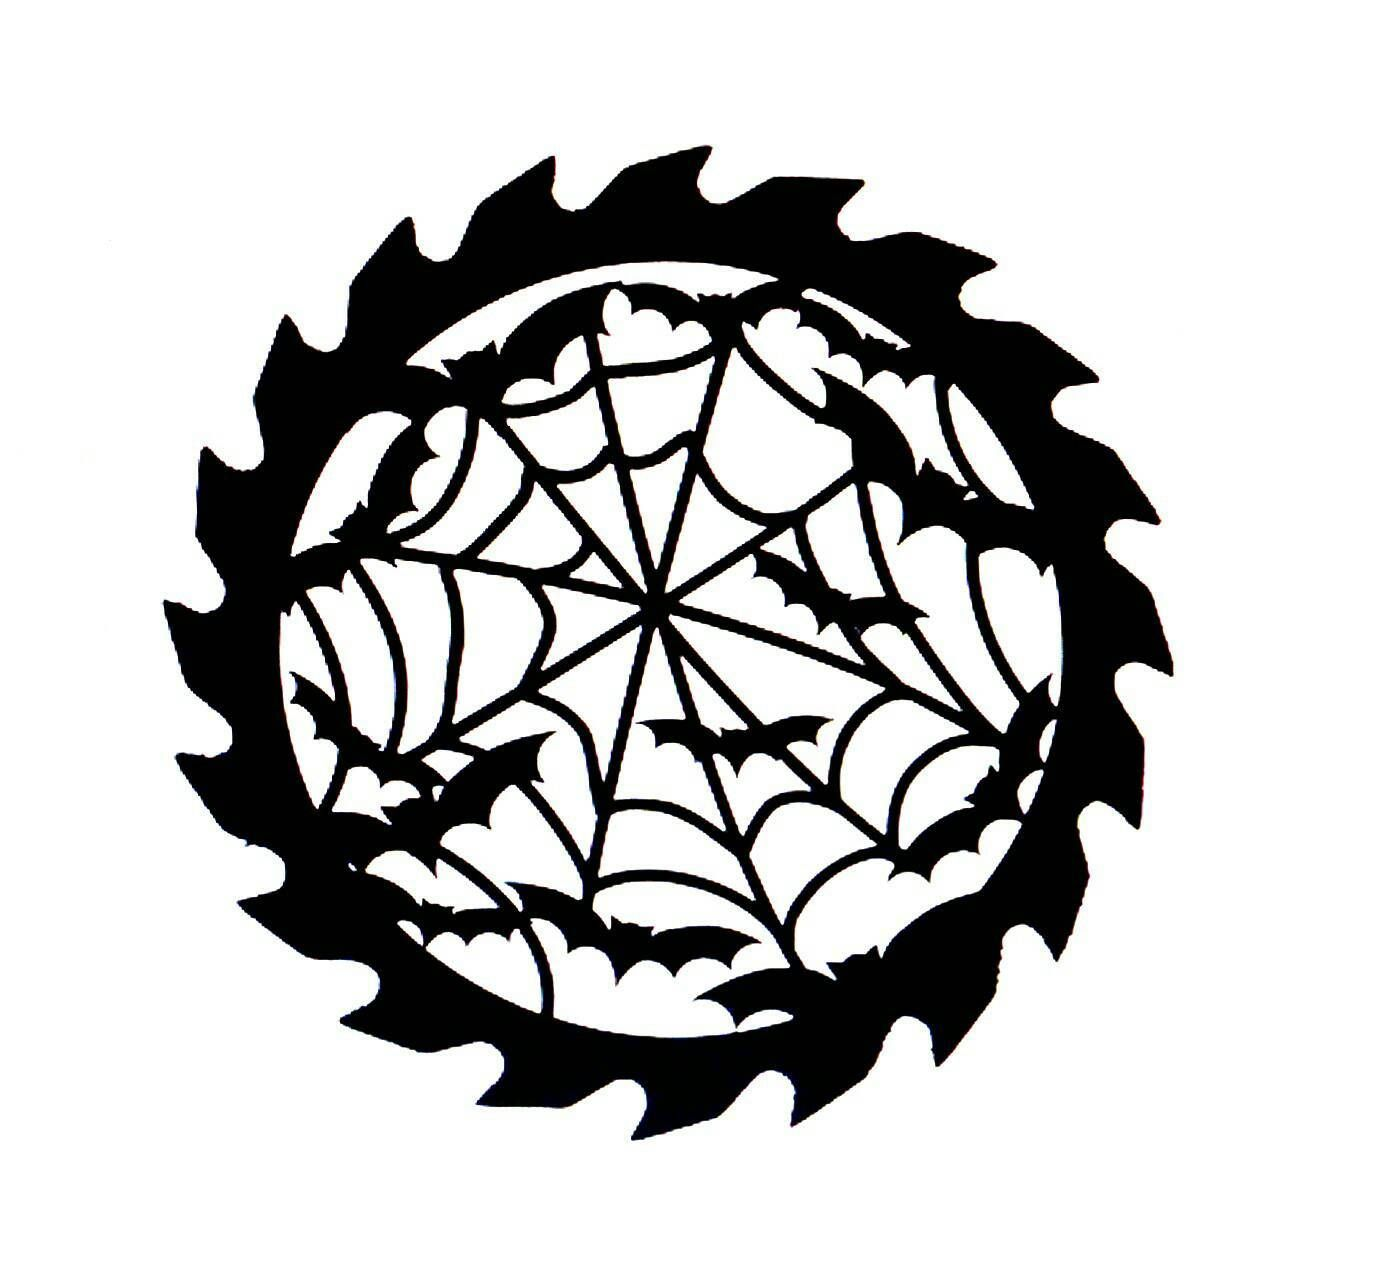 1380x1264 Bats In A Web Saw Blade Cardstock Cutouts, Saw Blade Silhouette